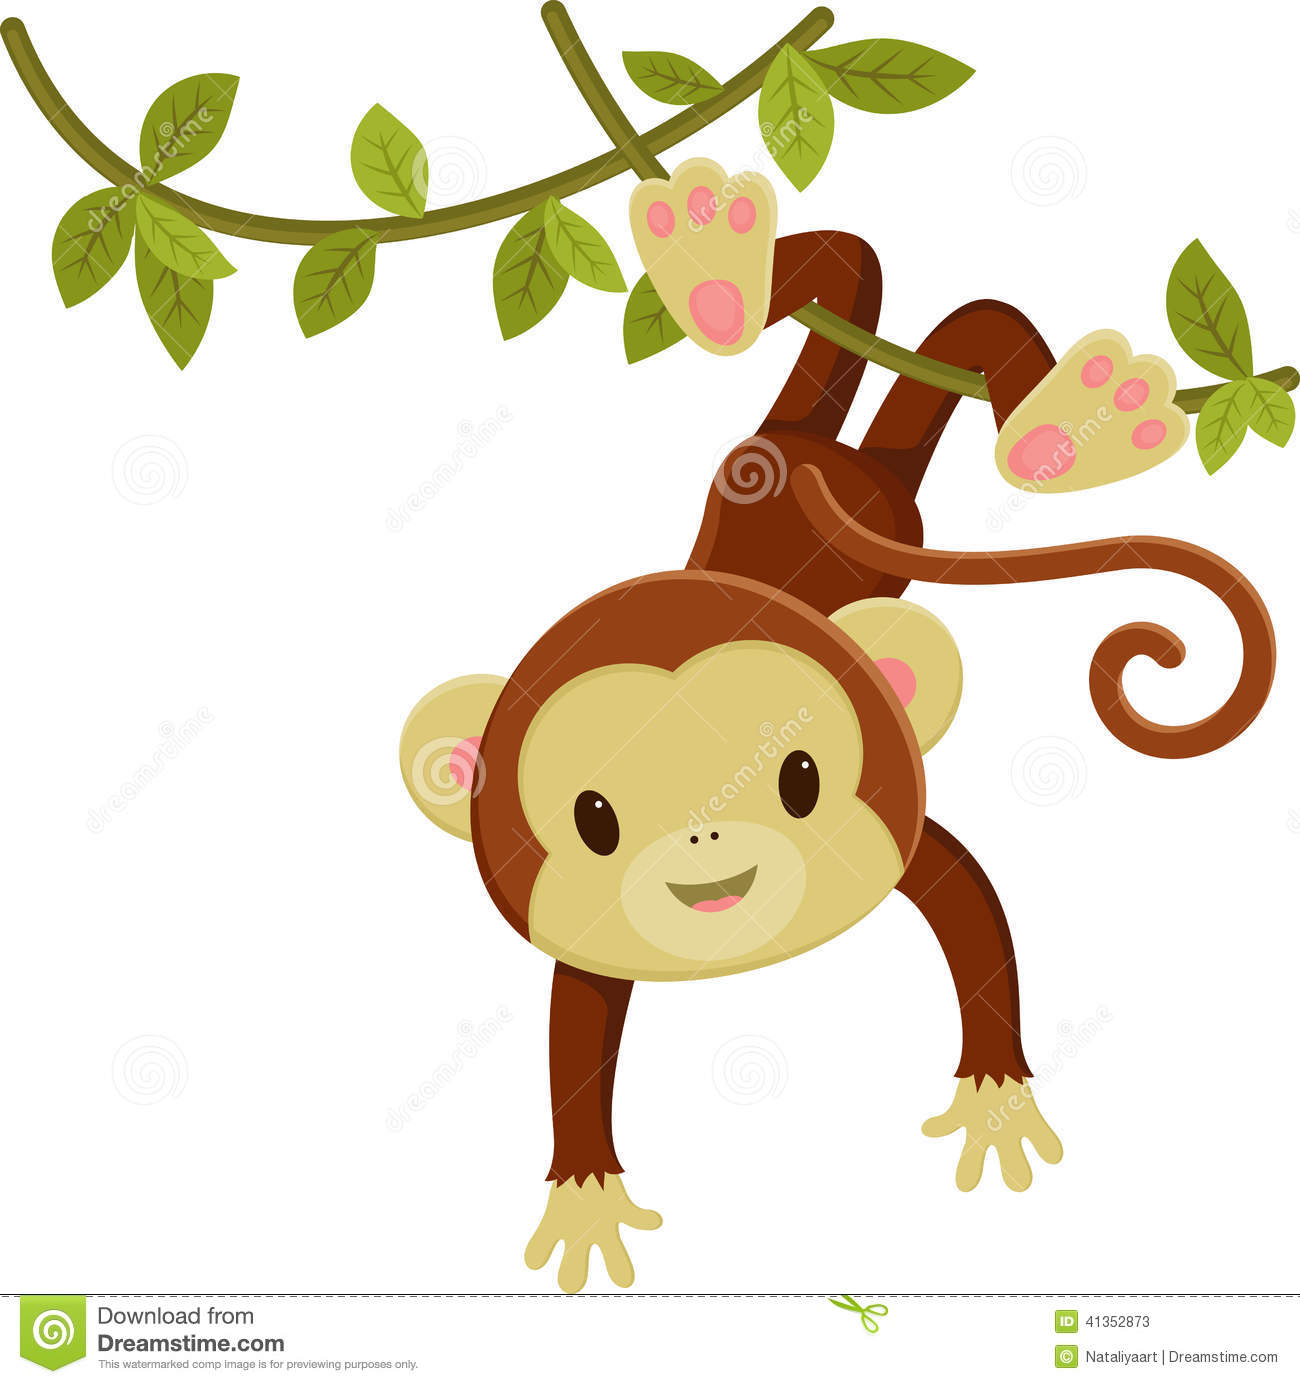 Ape clipart baby. Free animated monkey collection